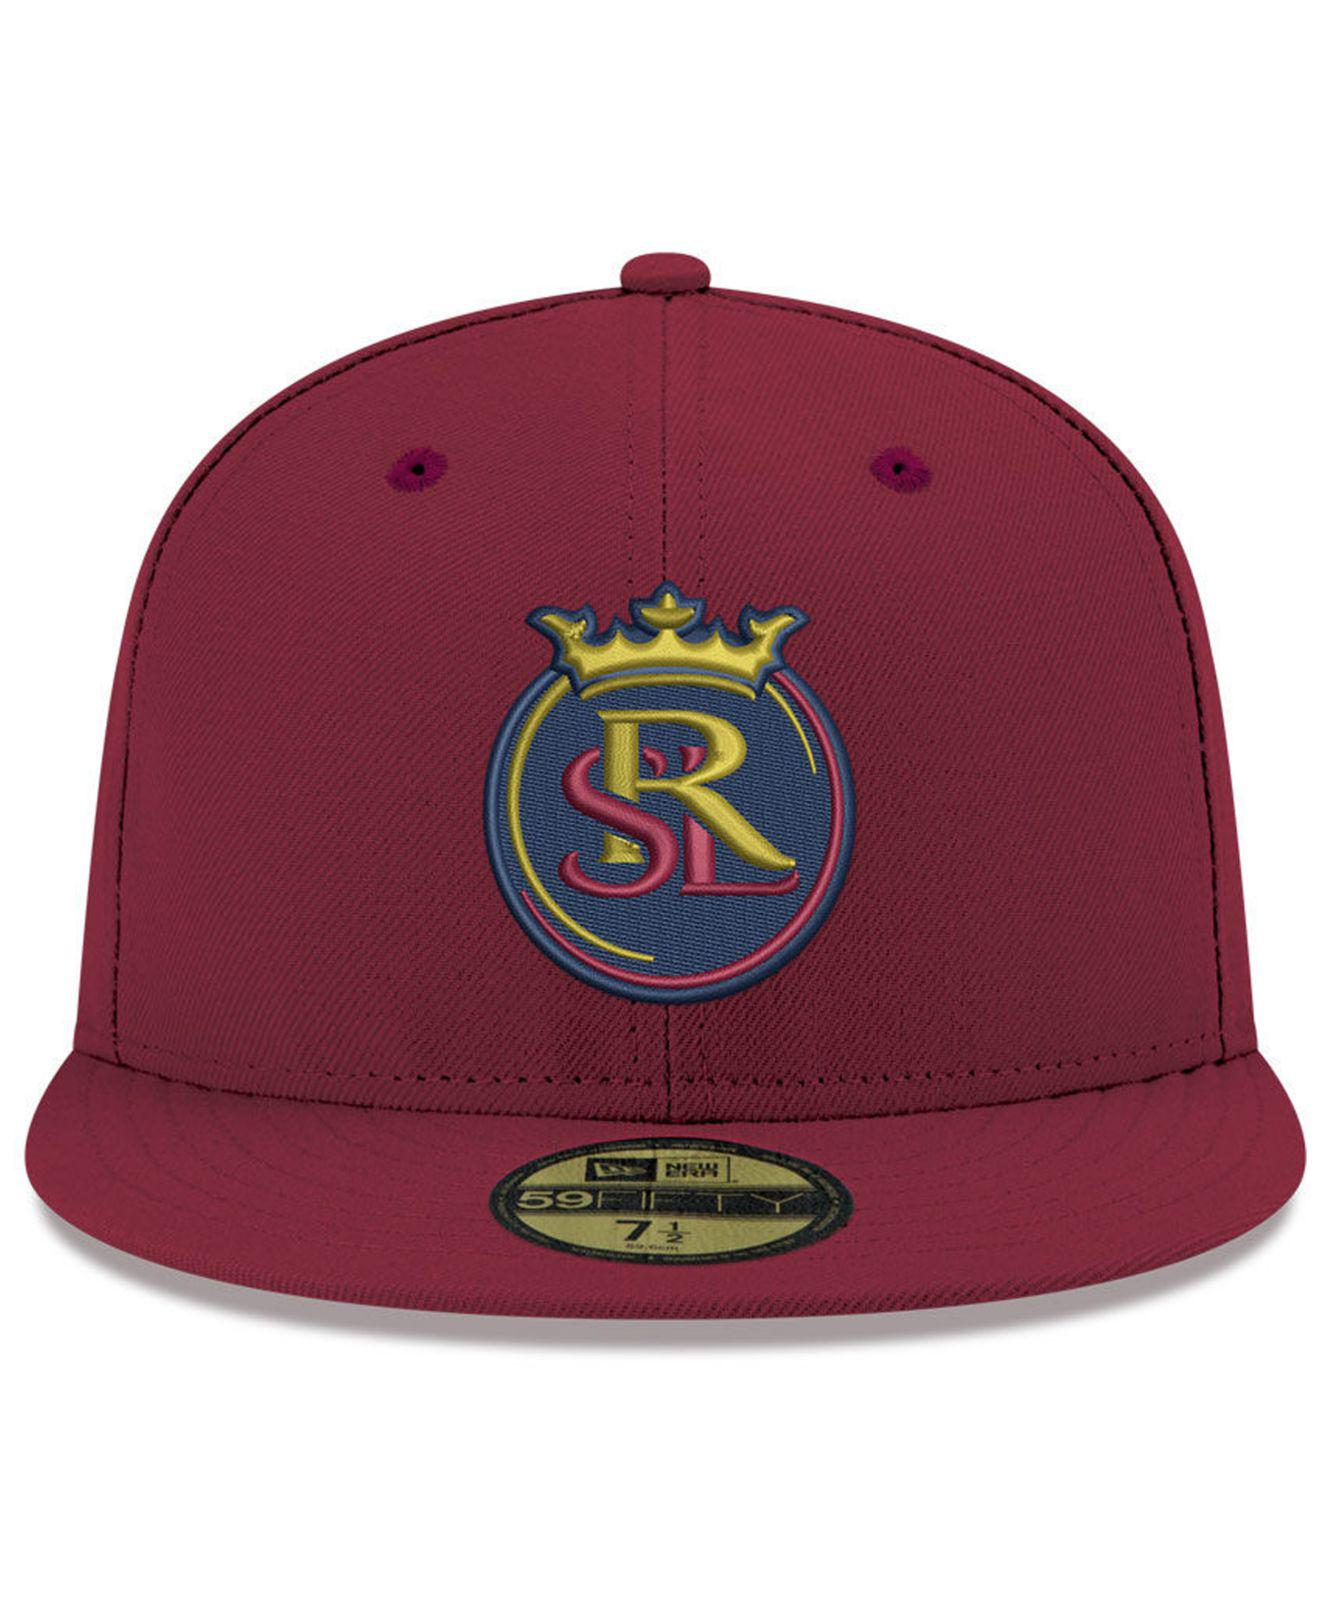 2d9cf887c14 Lyst - KTZ Real Salt Lake Core 59fifty-fitted Cap in Red for Men